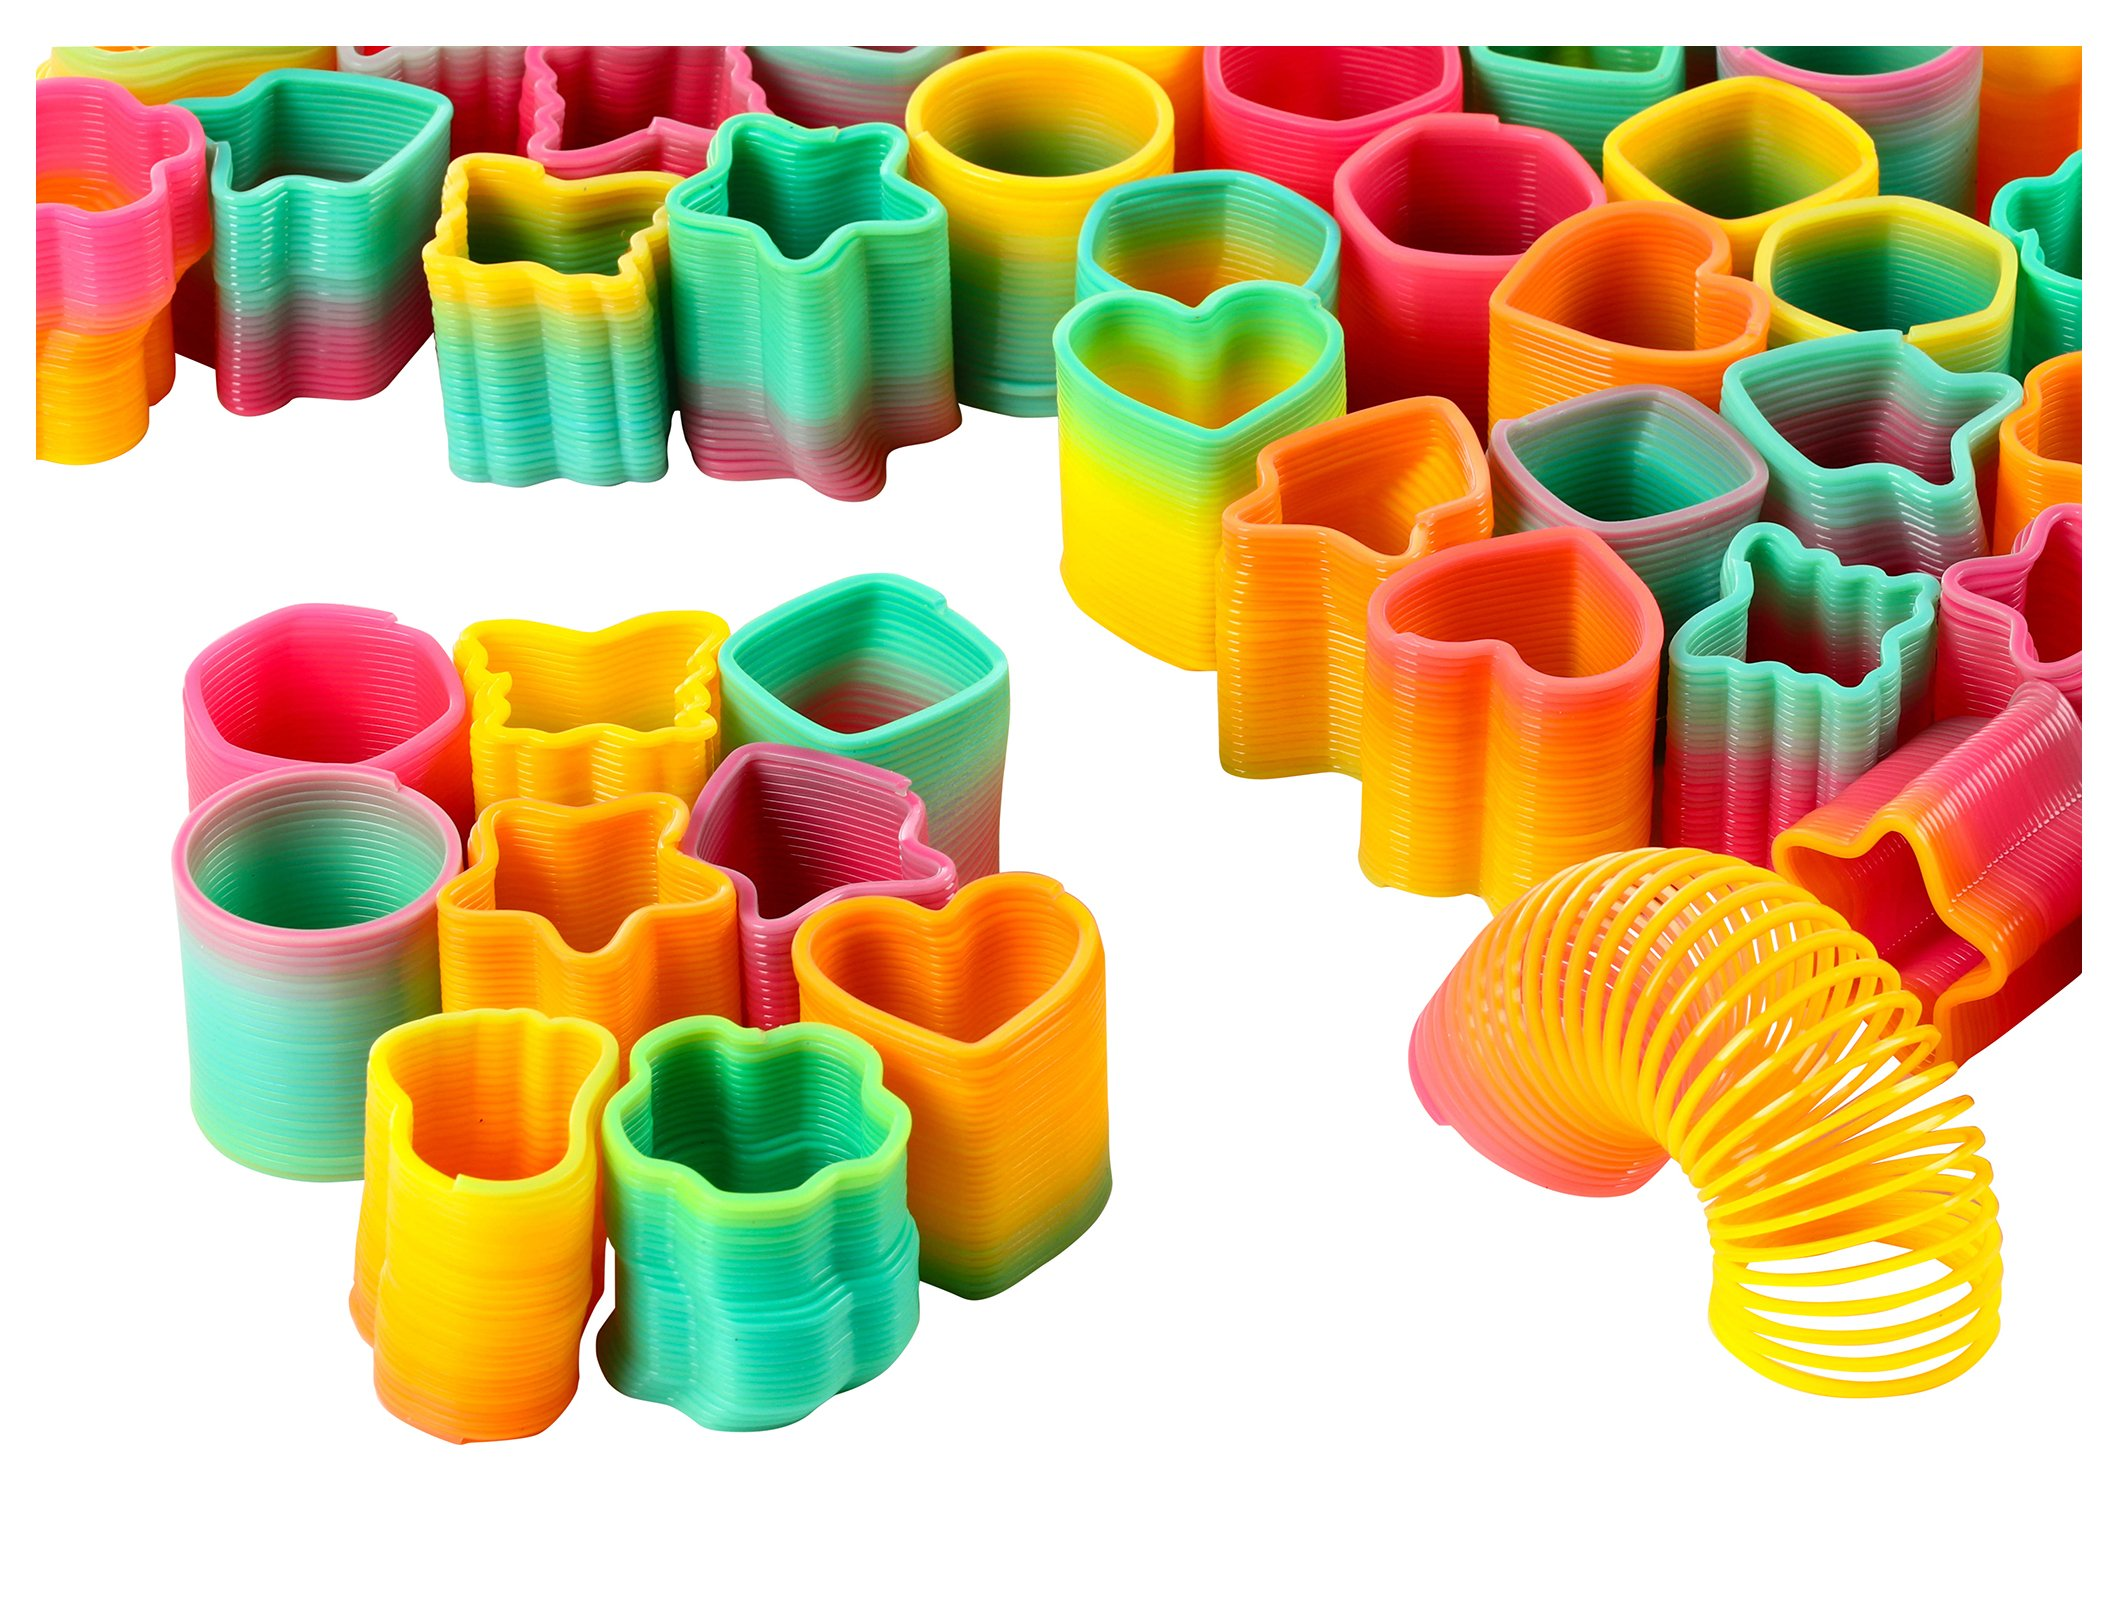 Blue Panda Rainbow Slinky Toy - 50-Pack Mini Plastic Slinky, Rainbow Coil Springs in 9 Shapes Kids Birthday Party Favors, Pinata Fillers, Goodie Bags, 1.5 x 1.25 inches